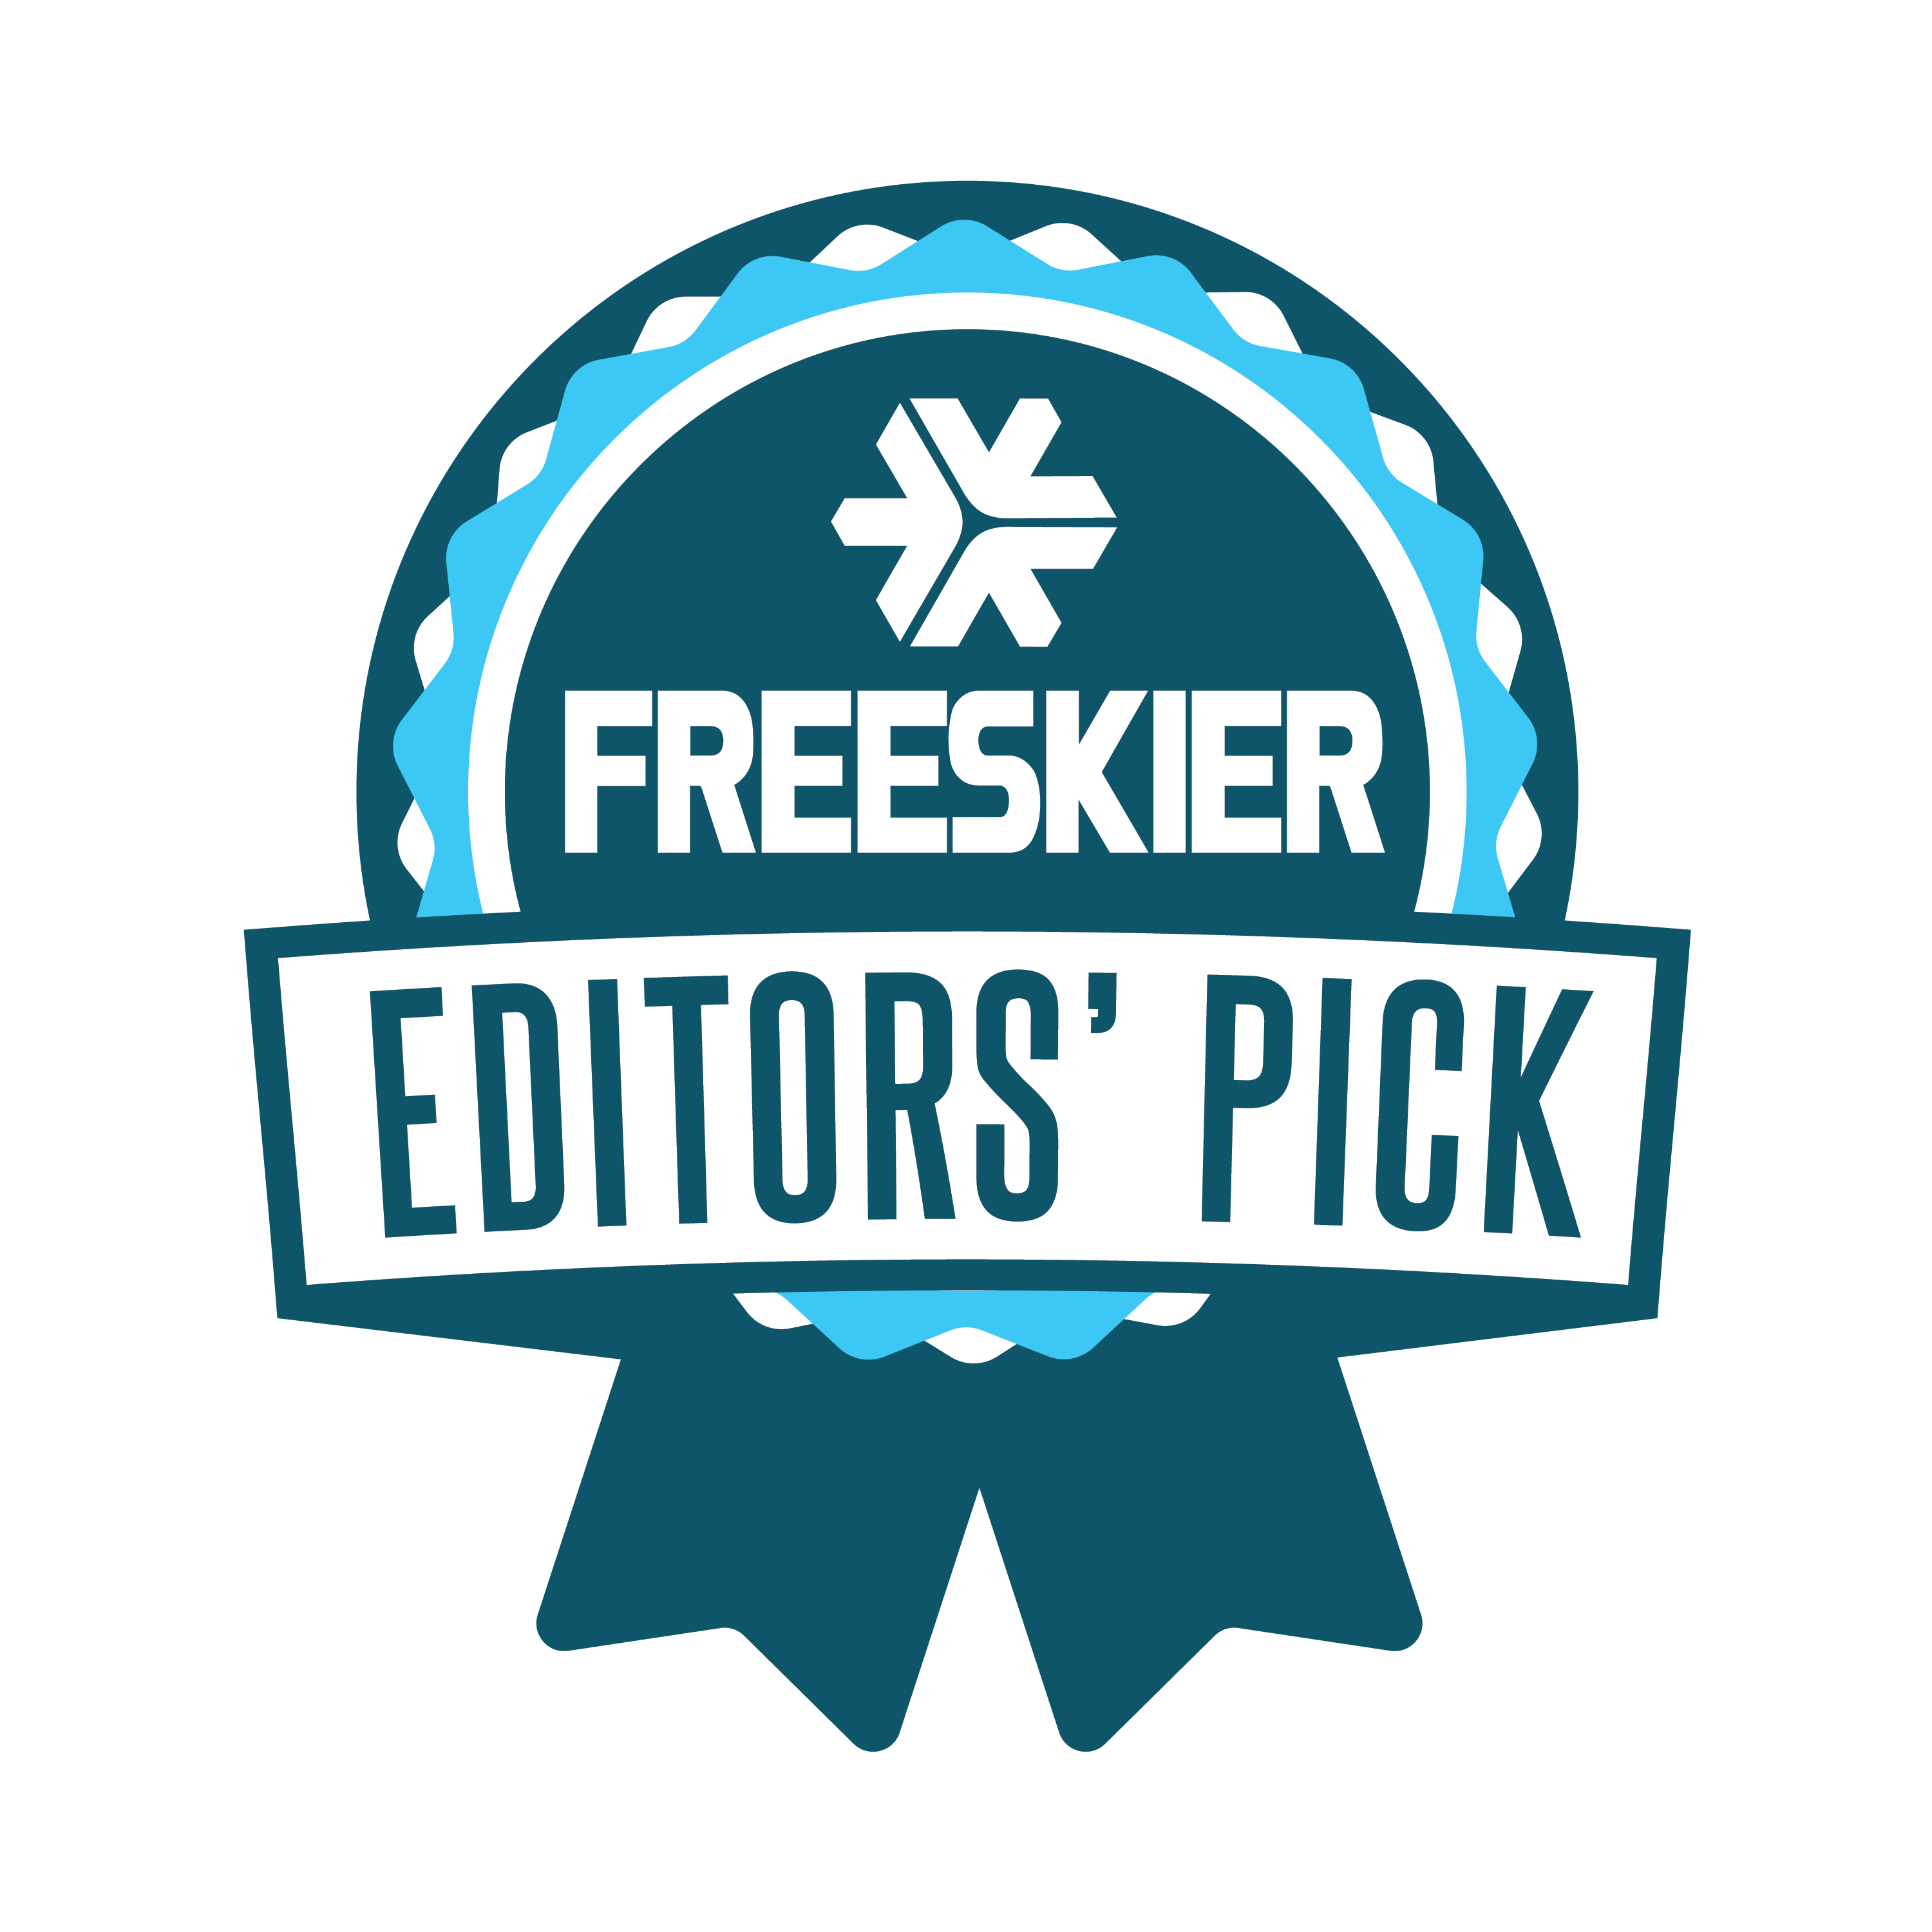 2020 Freeskier Editors' Pick